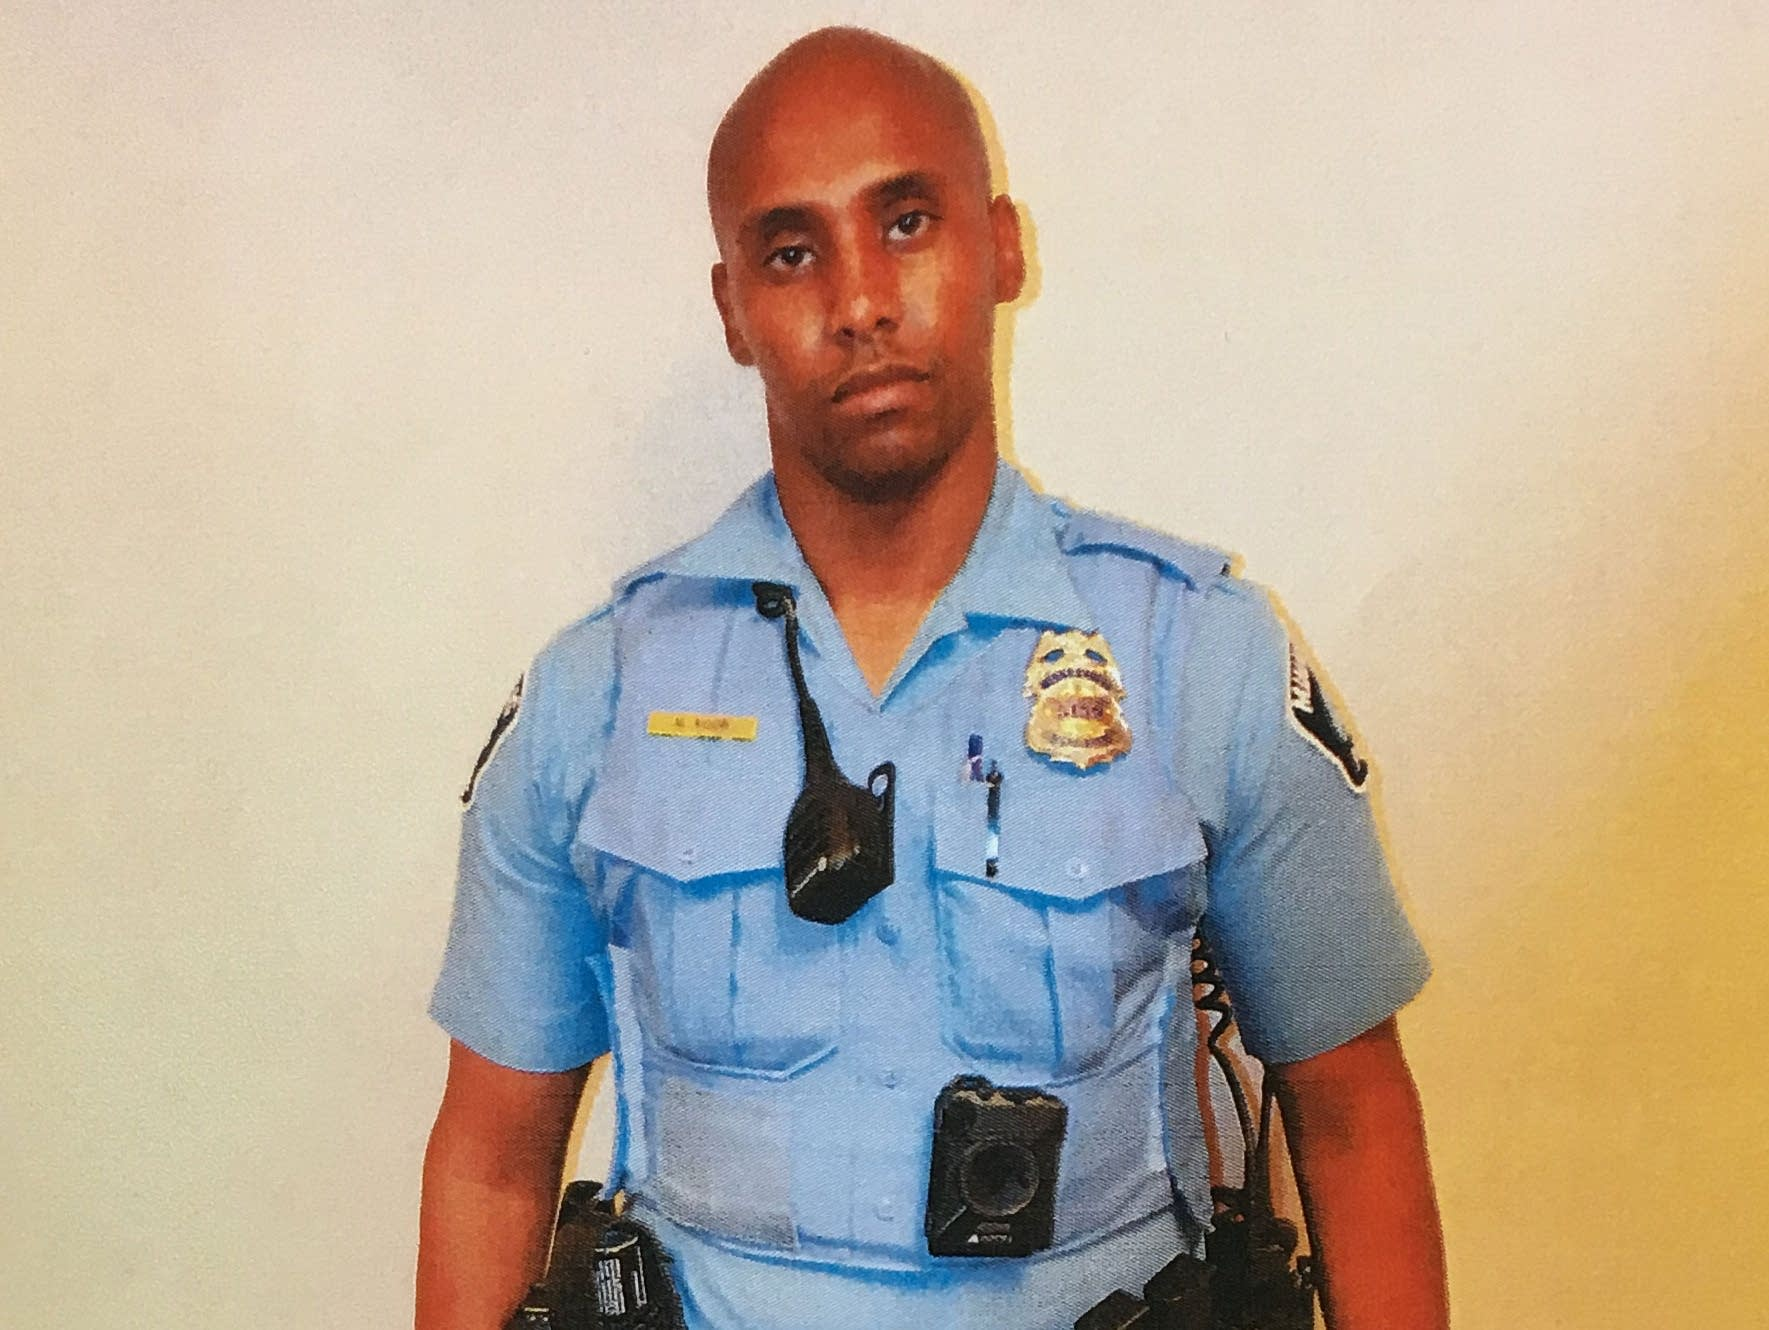 A photo of former Minneapolis officer Mohamed Noor